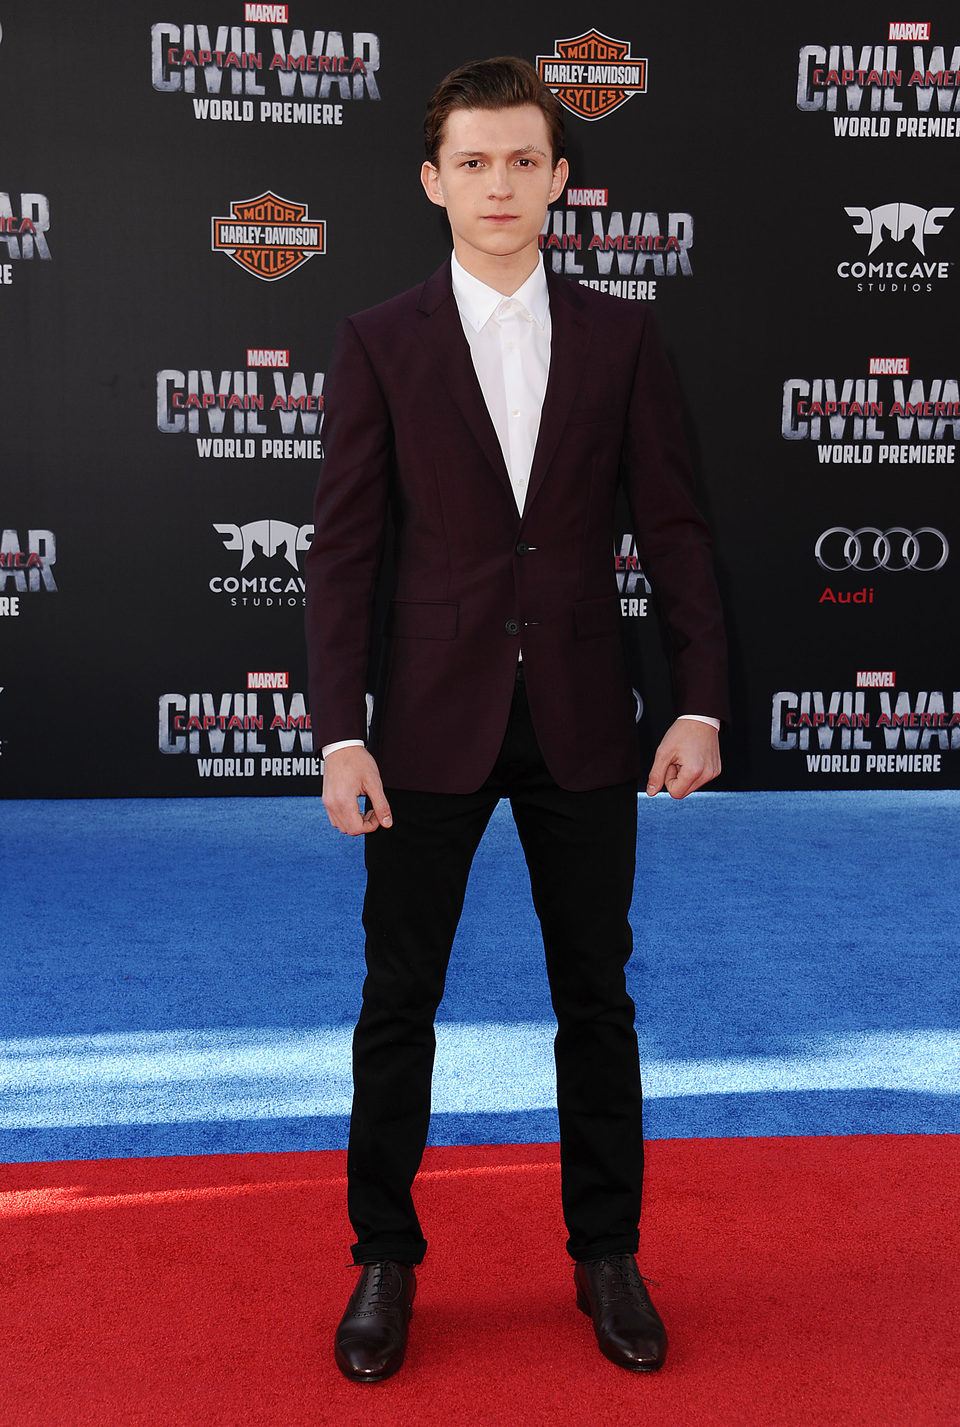 ¿Cuánto mide Tom Holland? - Altura - Real height 69084_tom-holland-premiere-mundial-capitan-america-civil-war